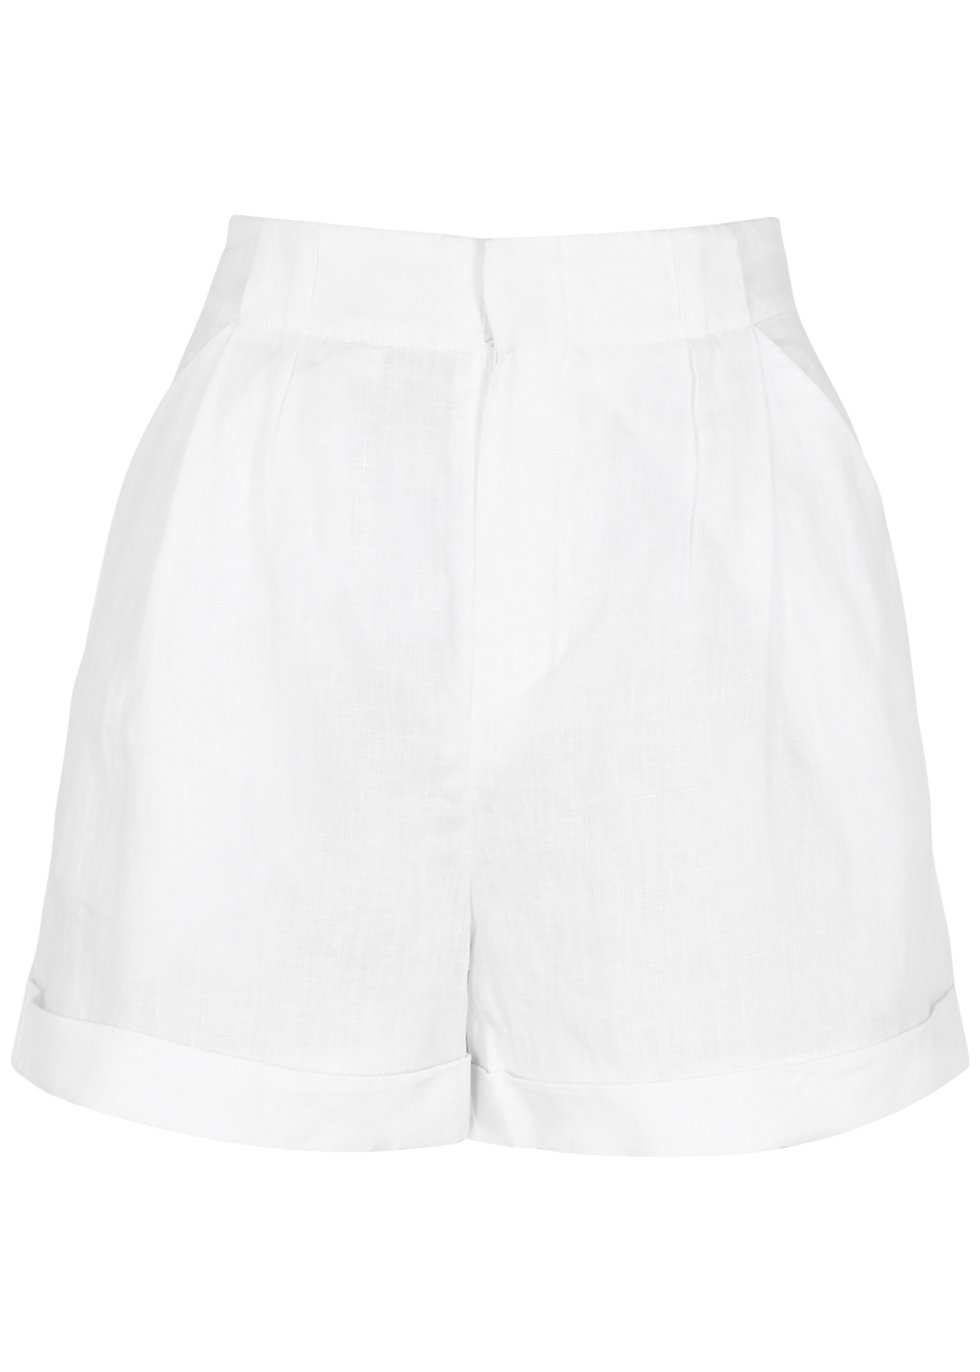 Boyde white linen shorts